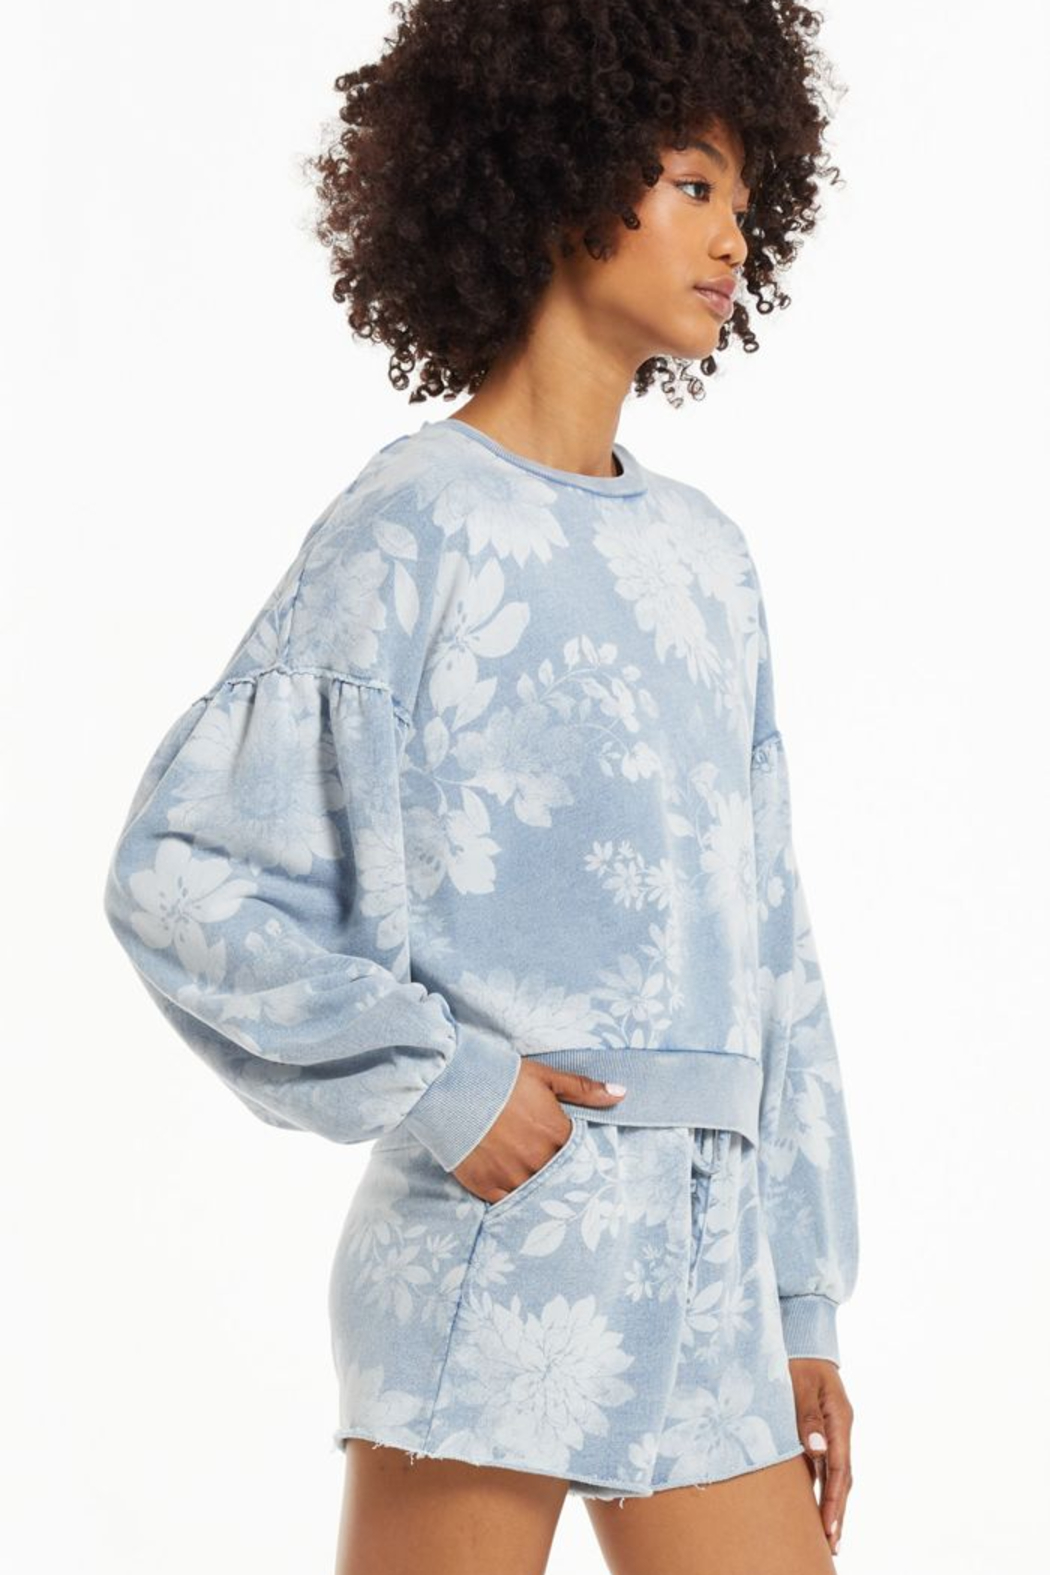 z supply Claire Floral Sweatshirt - Front Full Image